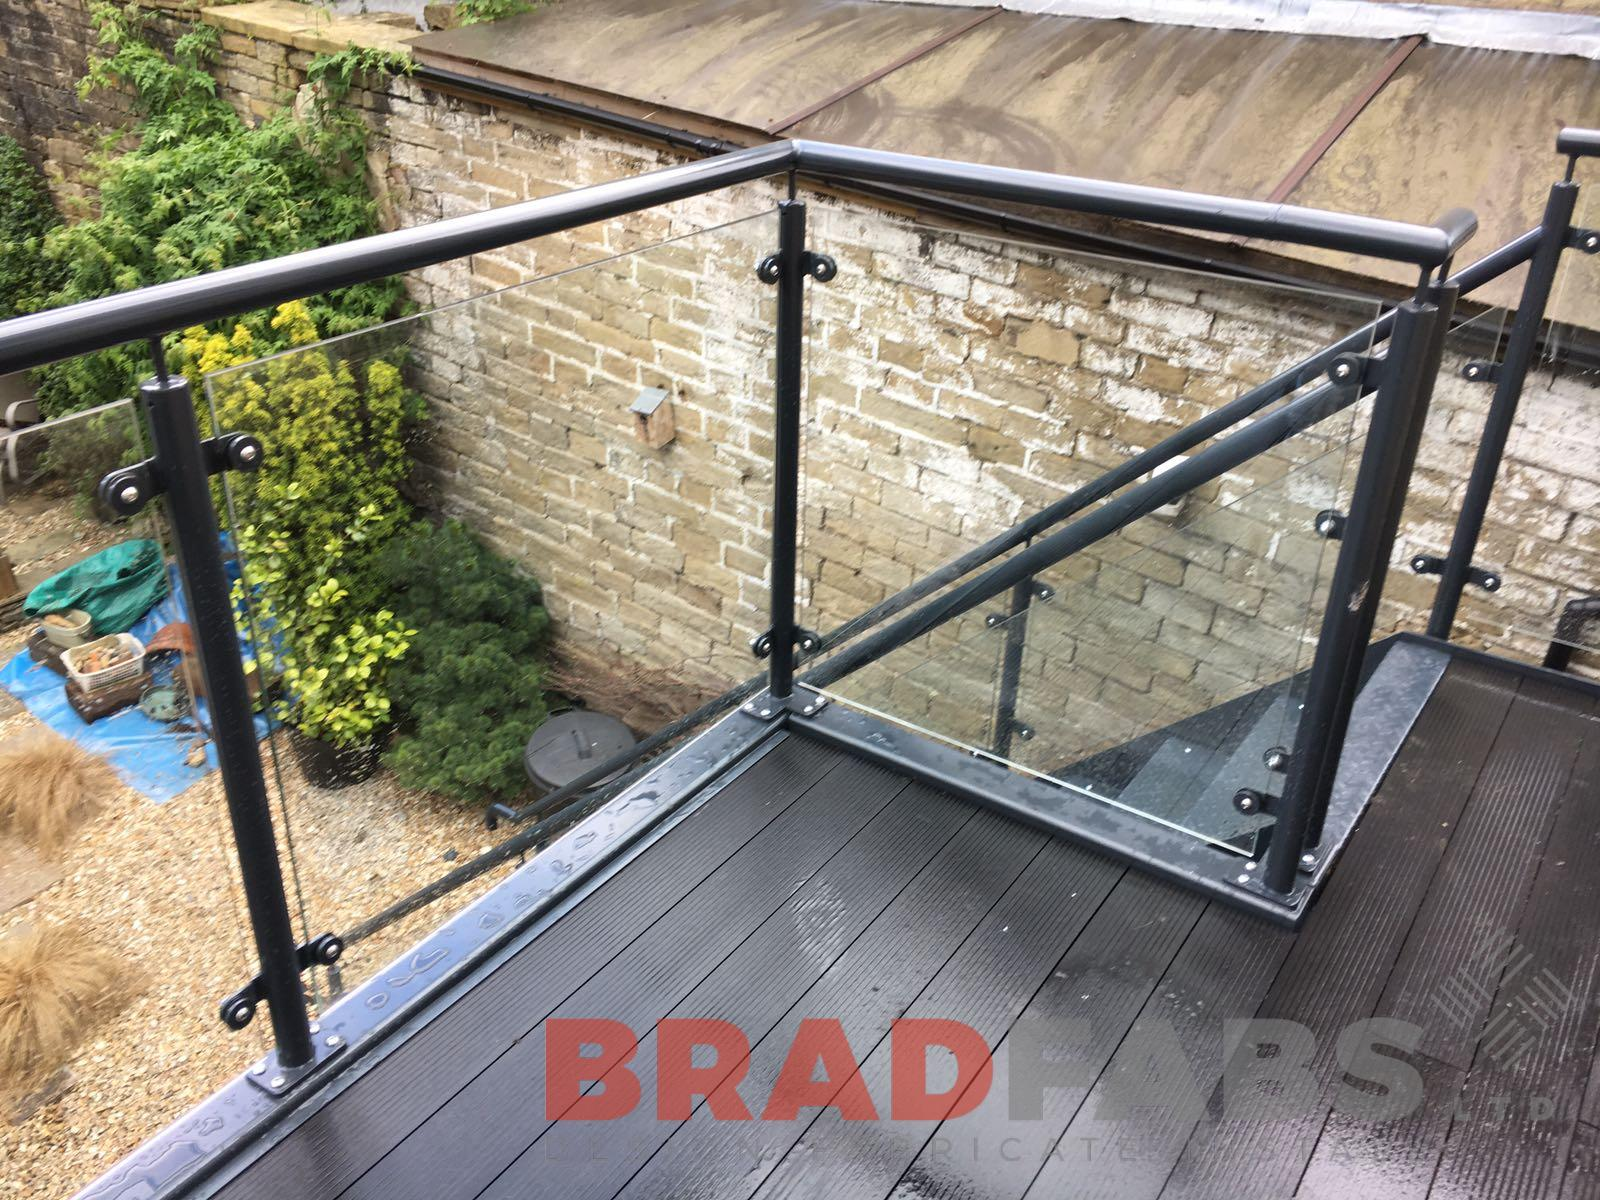 ce marked balcony experts are bradfabs